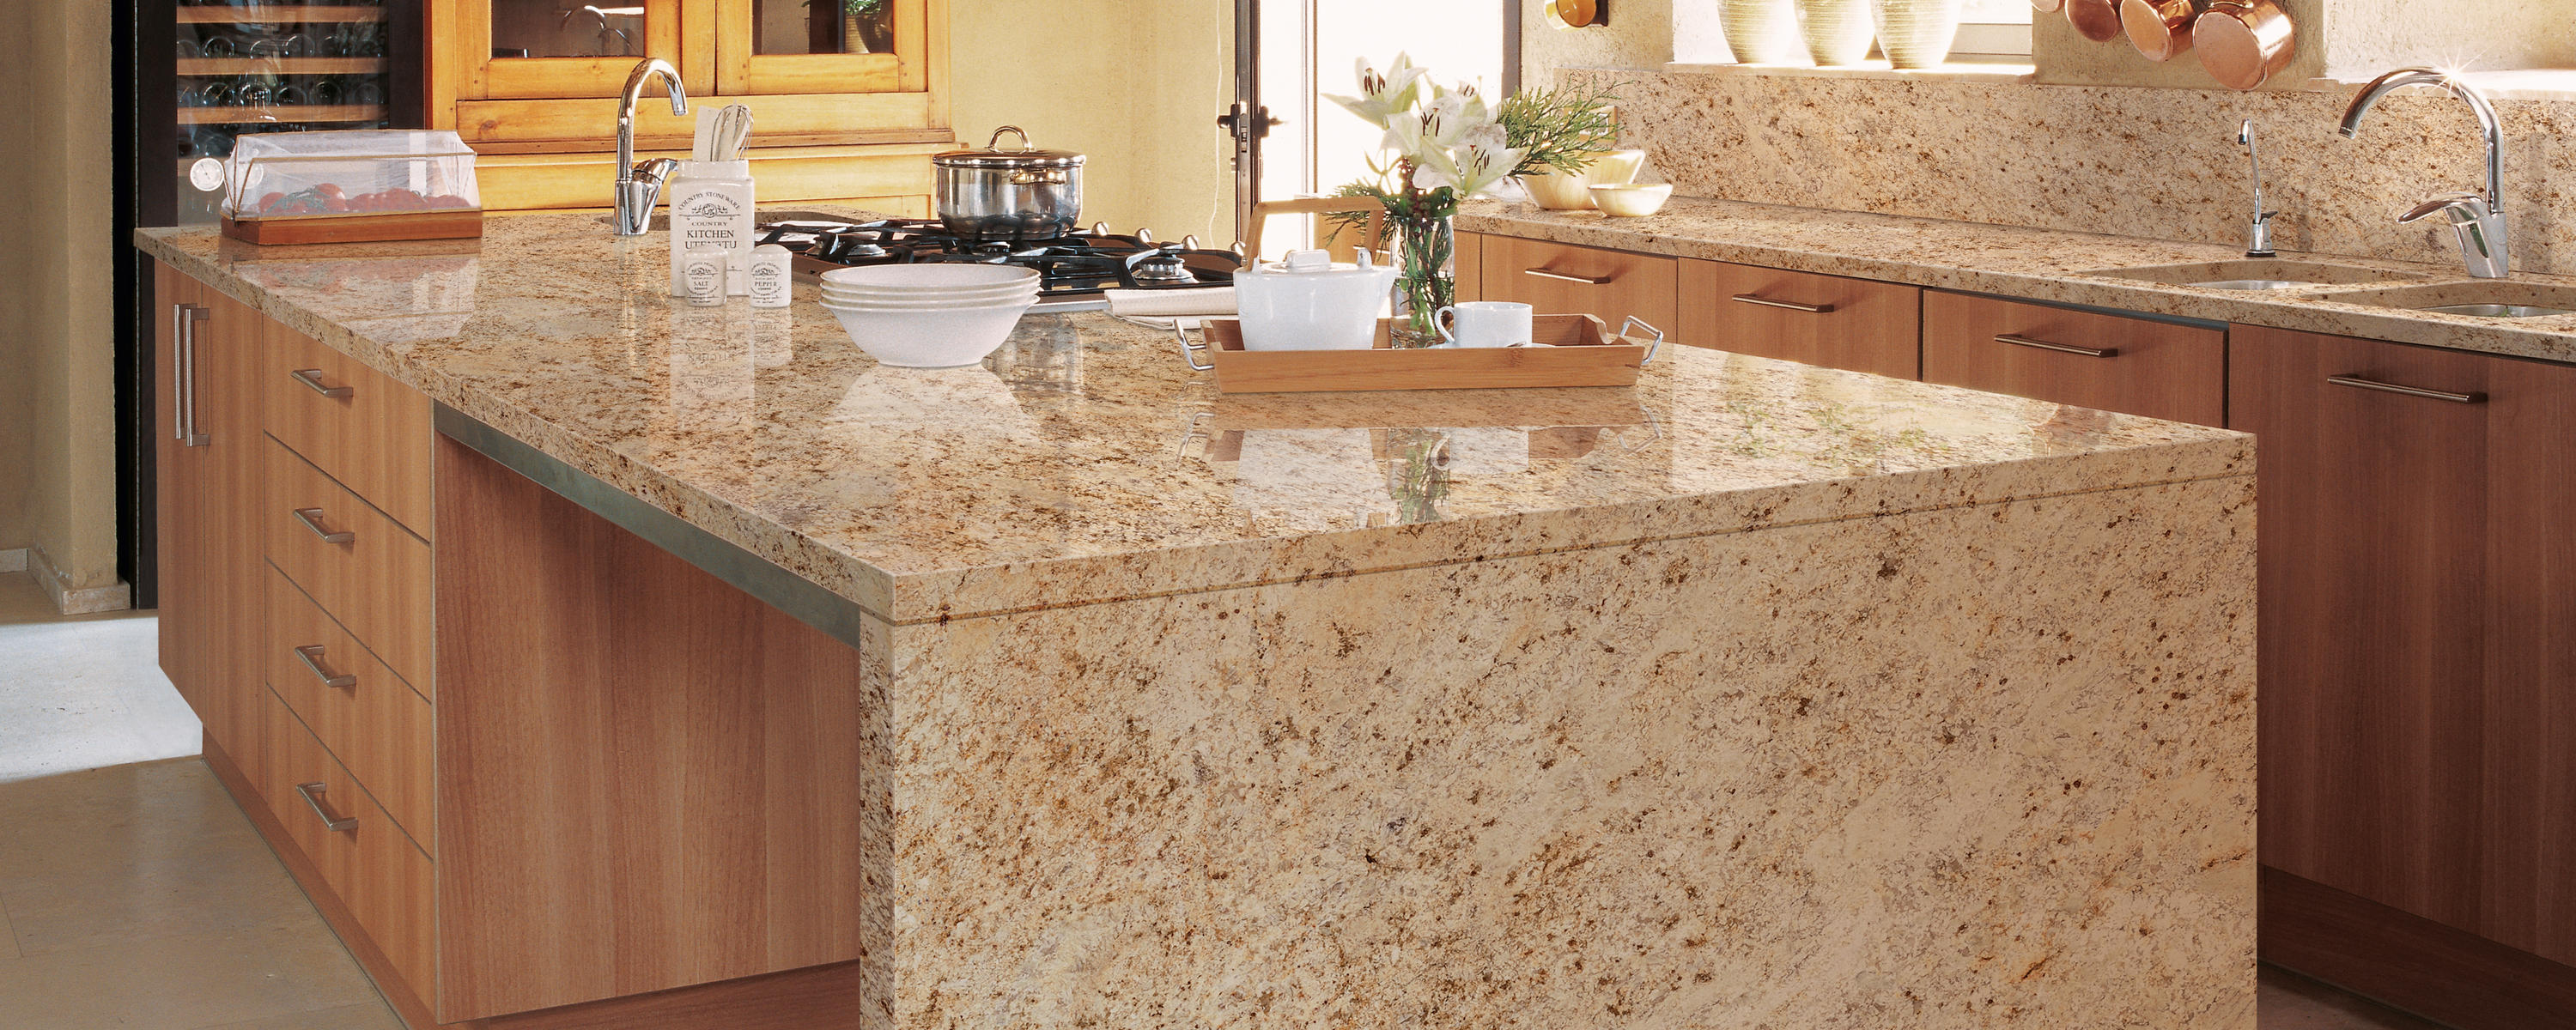 Granite collection colonial gold kitchen countertops - Encimeras de granito ...